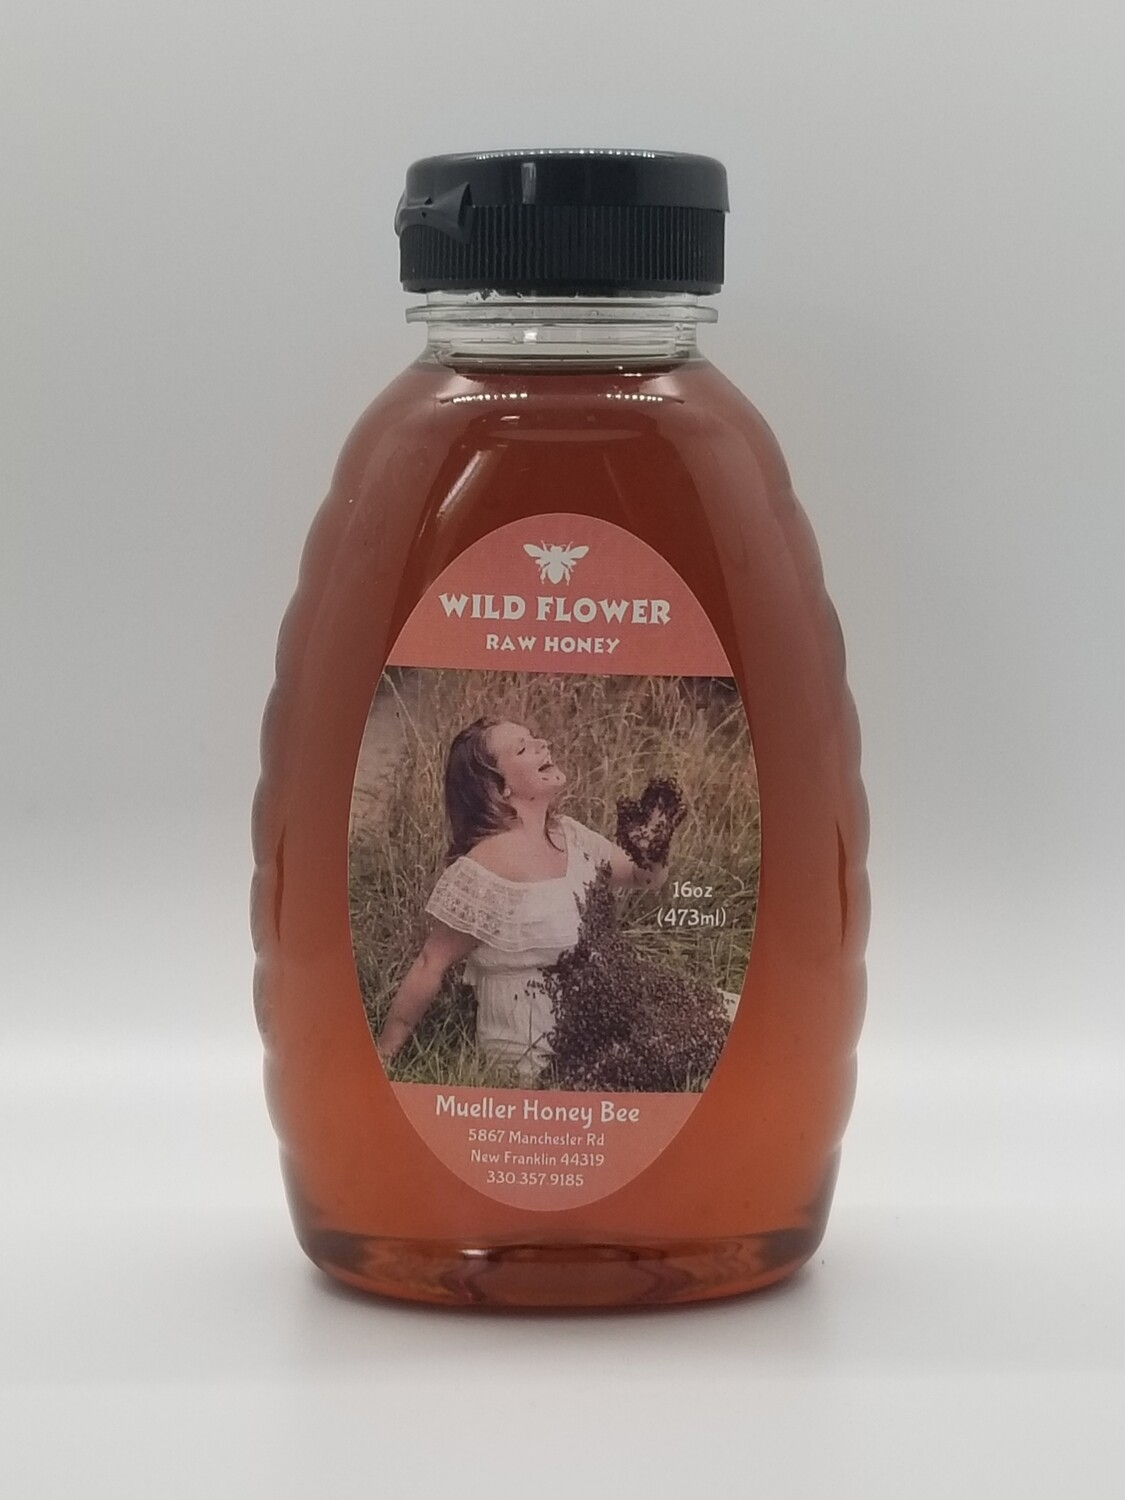 8 oz Raw Wild Flower Honey